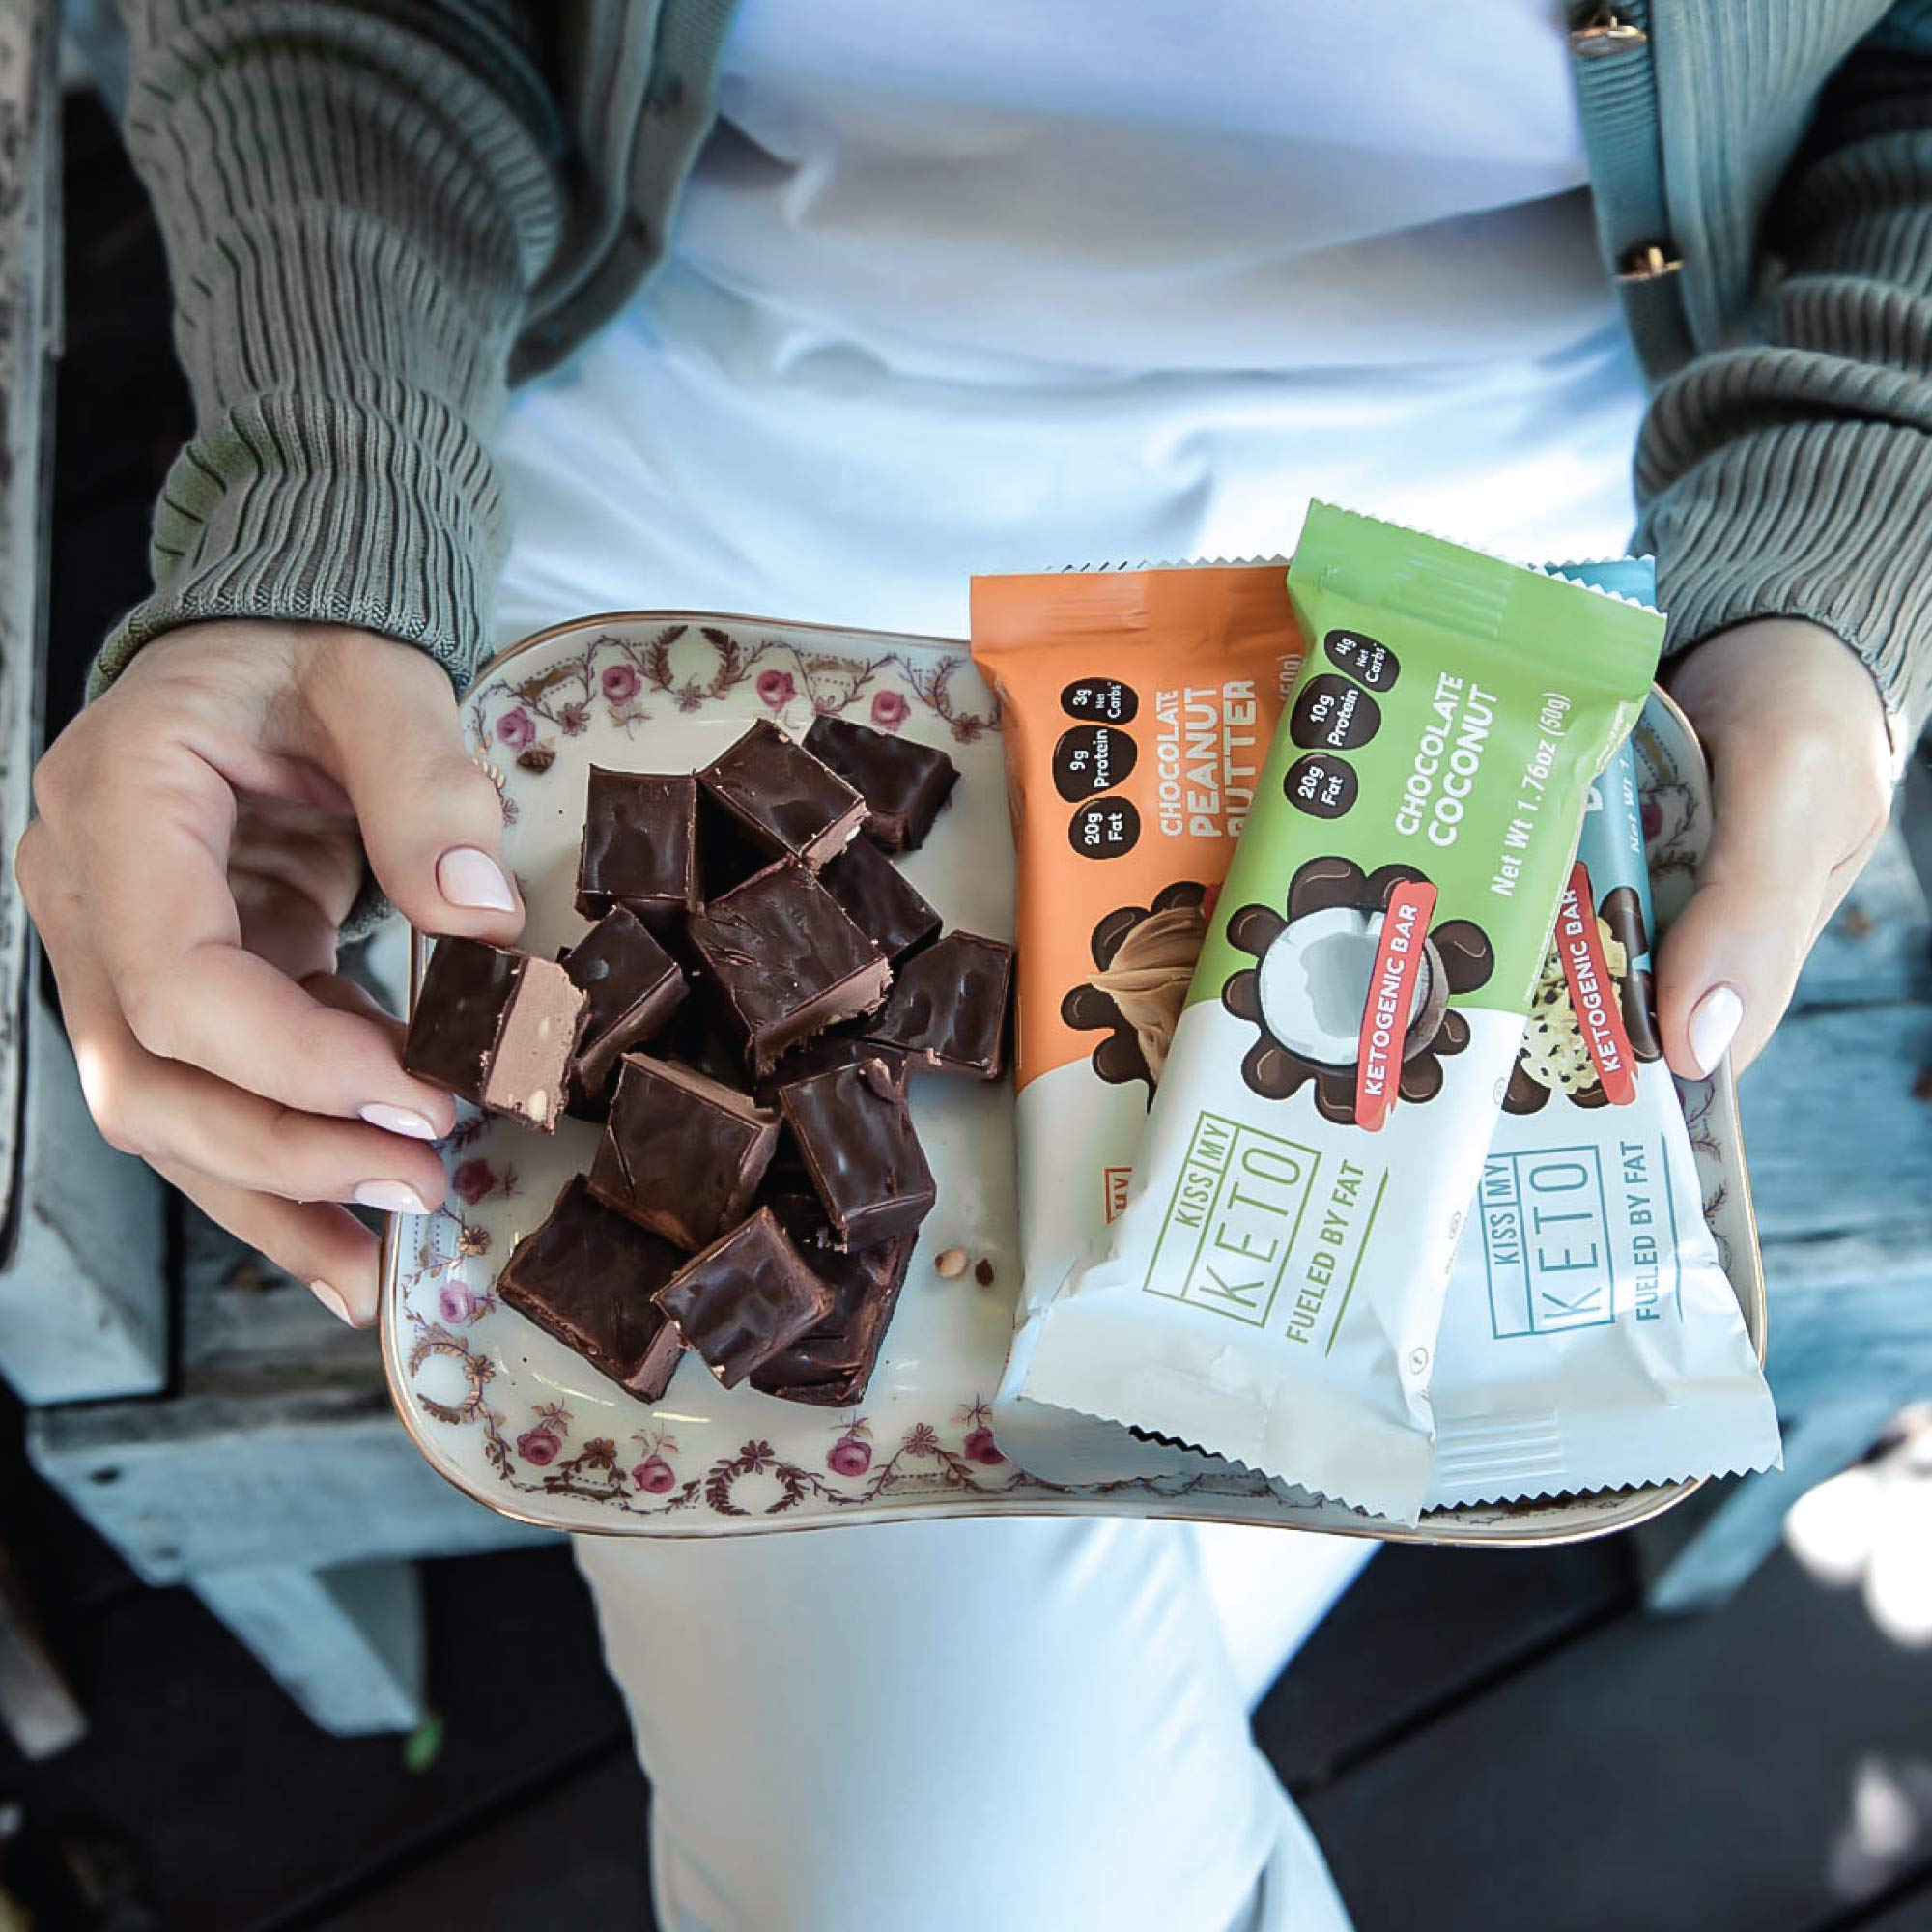 Kiss My Keto Snacks Keto Bars - Keto Chocolate Coconut (3 Pack, 36 Bars), Nutritional Keto Food Bars, Paleo, Low Carb/Glycemic Keto Friendly Foods, All Natural On-The-Go Snacks, 4g Net Carbs by Kiss My Keto (Image #1)